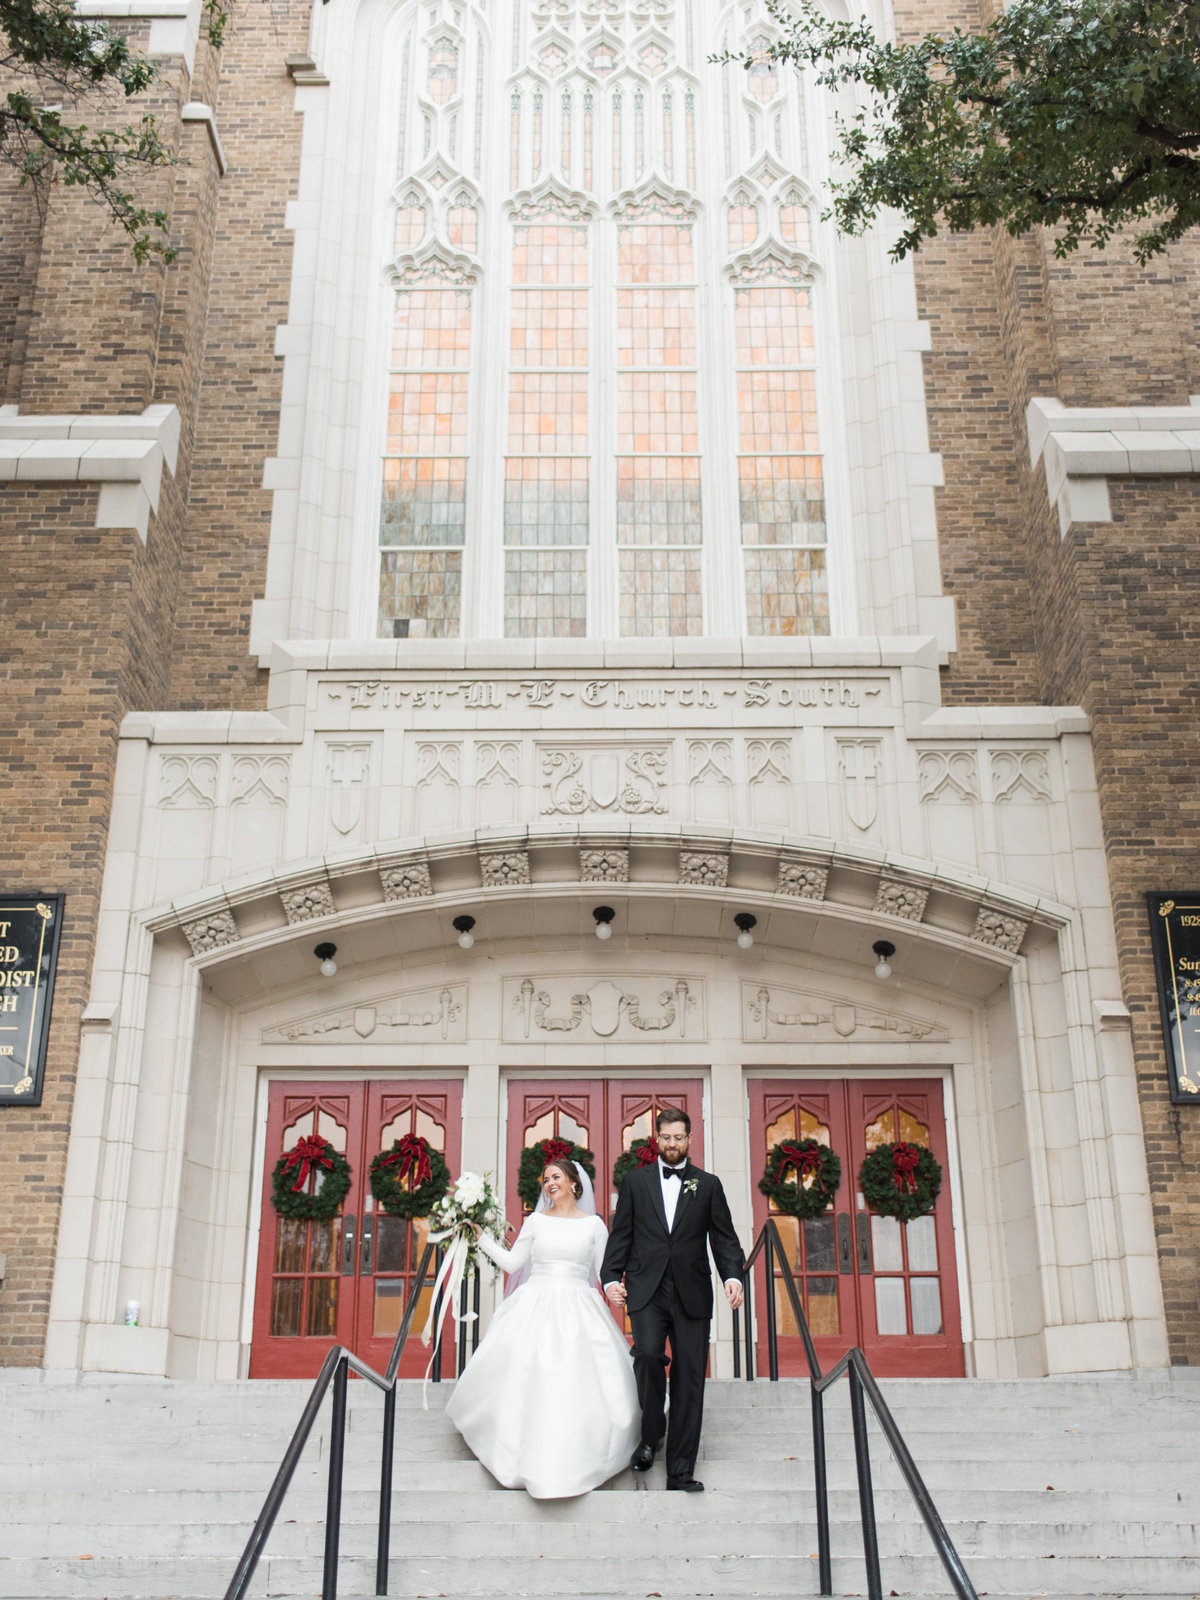 Courtney Hanson Photography - Festive Holiday Wedding in Dallas at Hickory Street Annex-0190